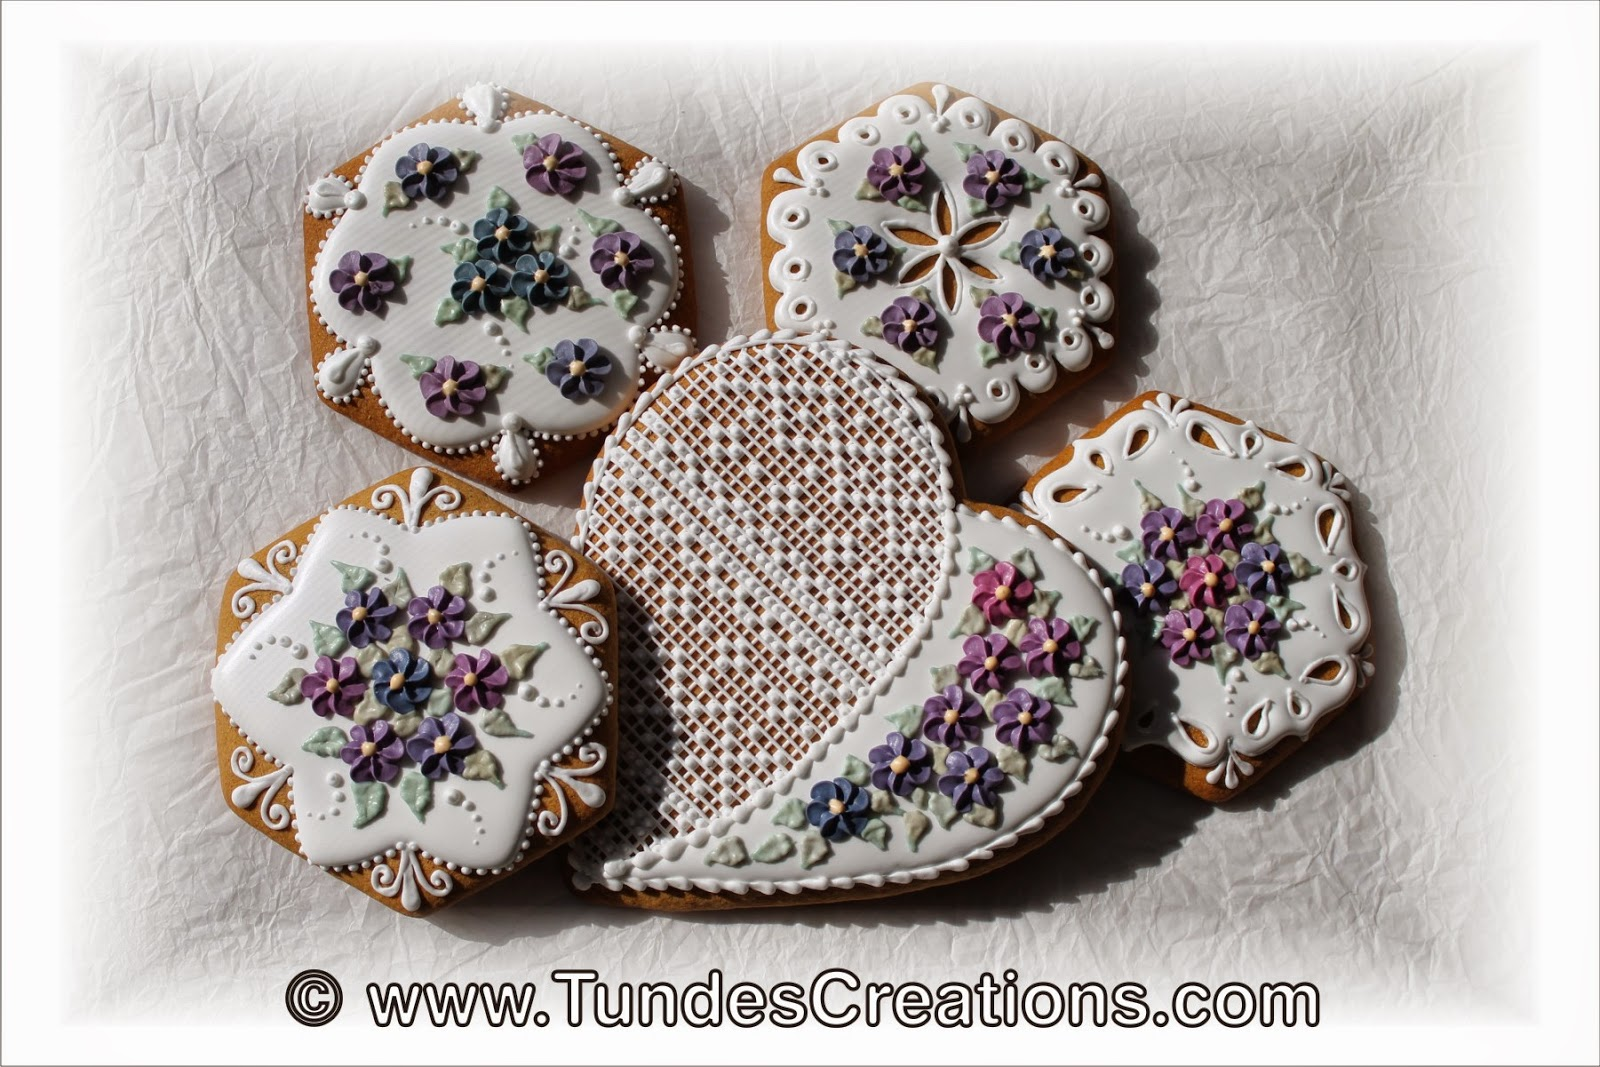 Gingerbread Cookies with natural food coloring